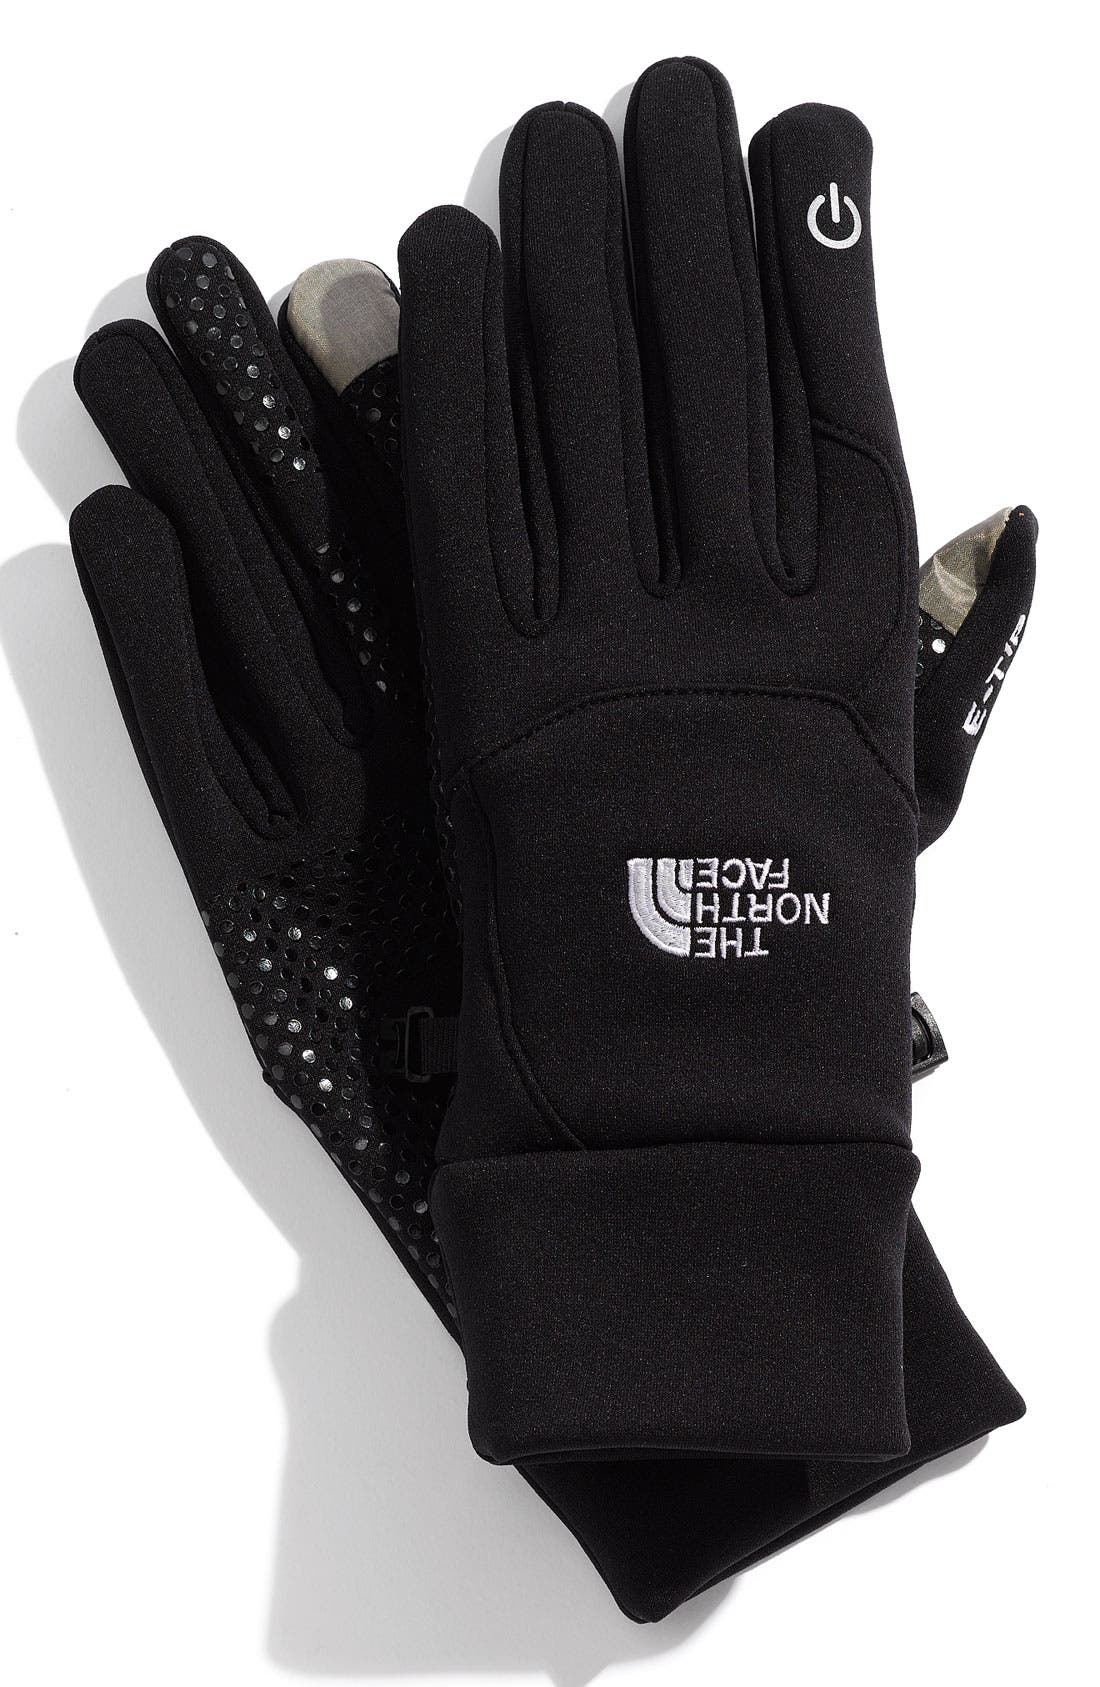 THE NORTH FACE,                             E-Tip Gloves,                             Main thumbnail 1, color,                             001